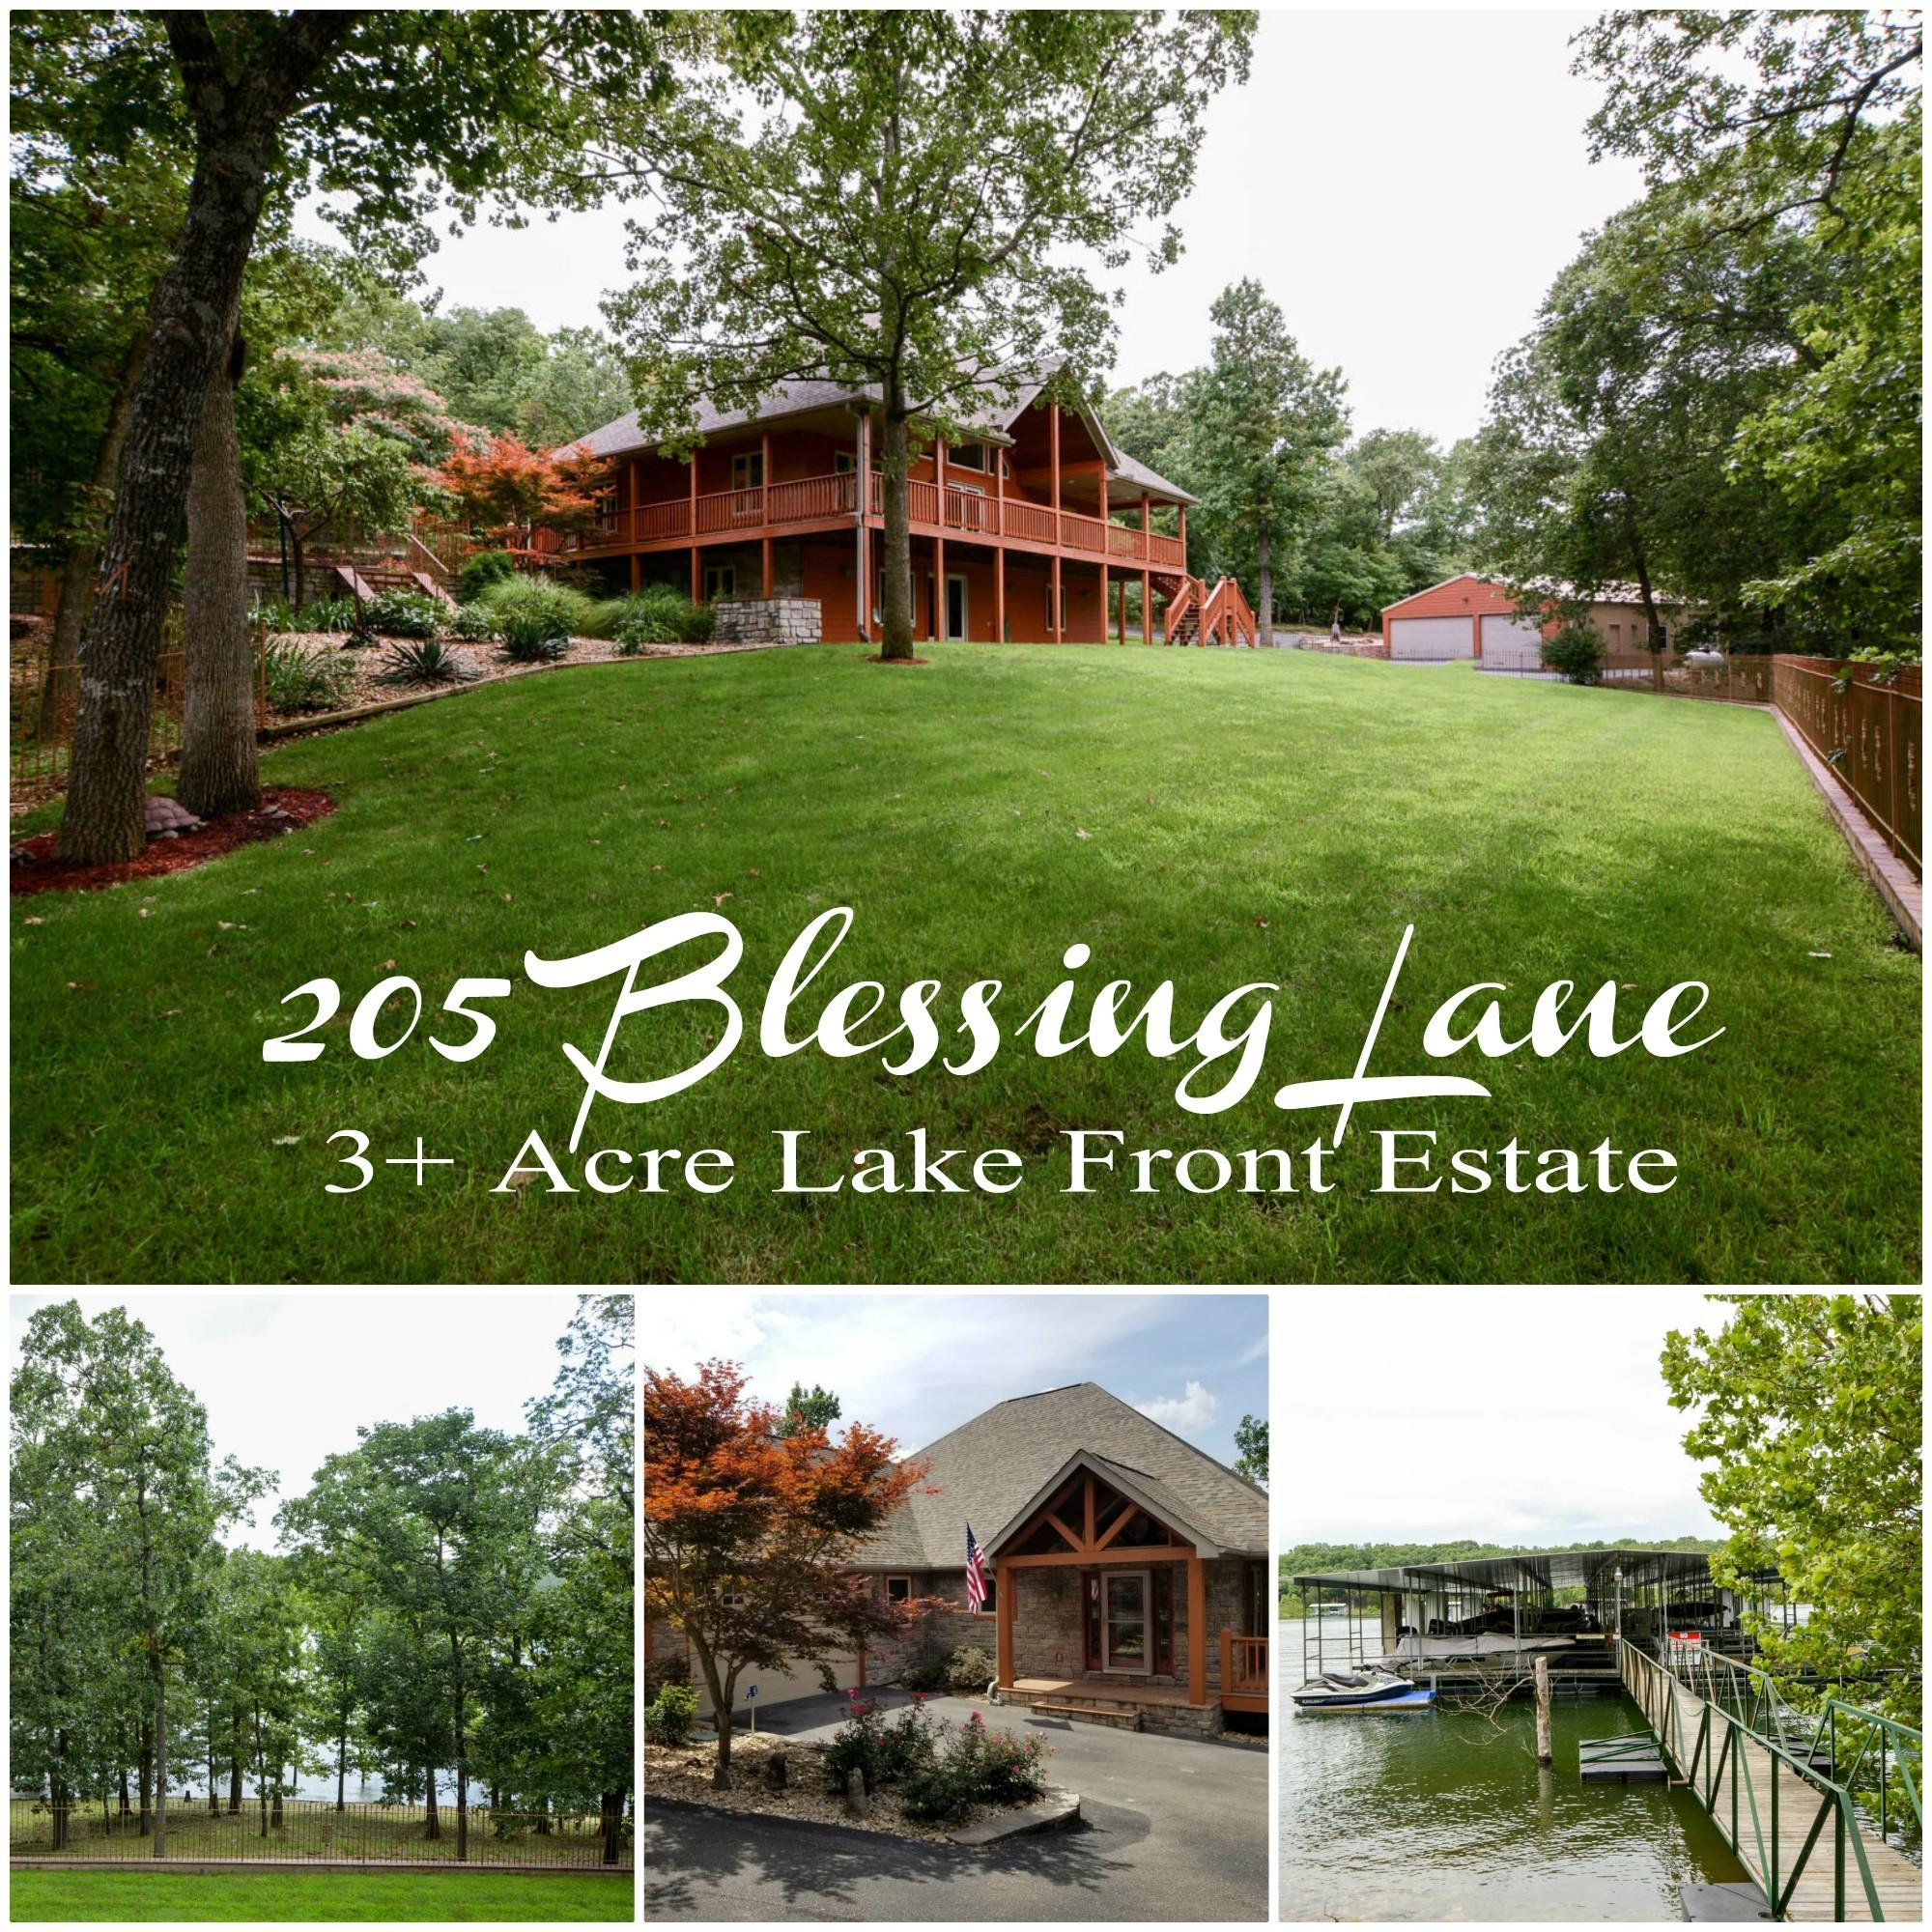 205 Blessing Lane Kimberling City, MO 65686